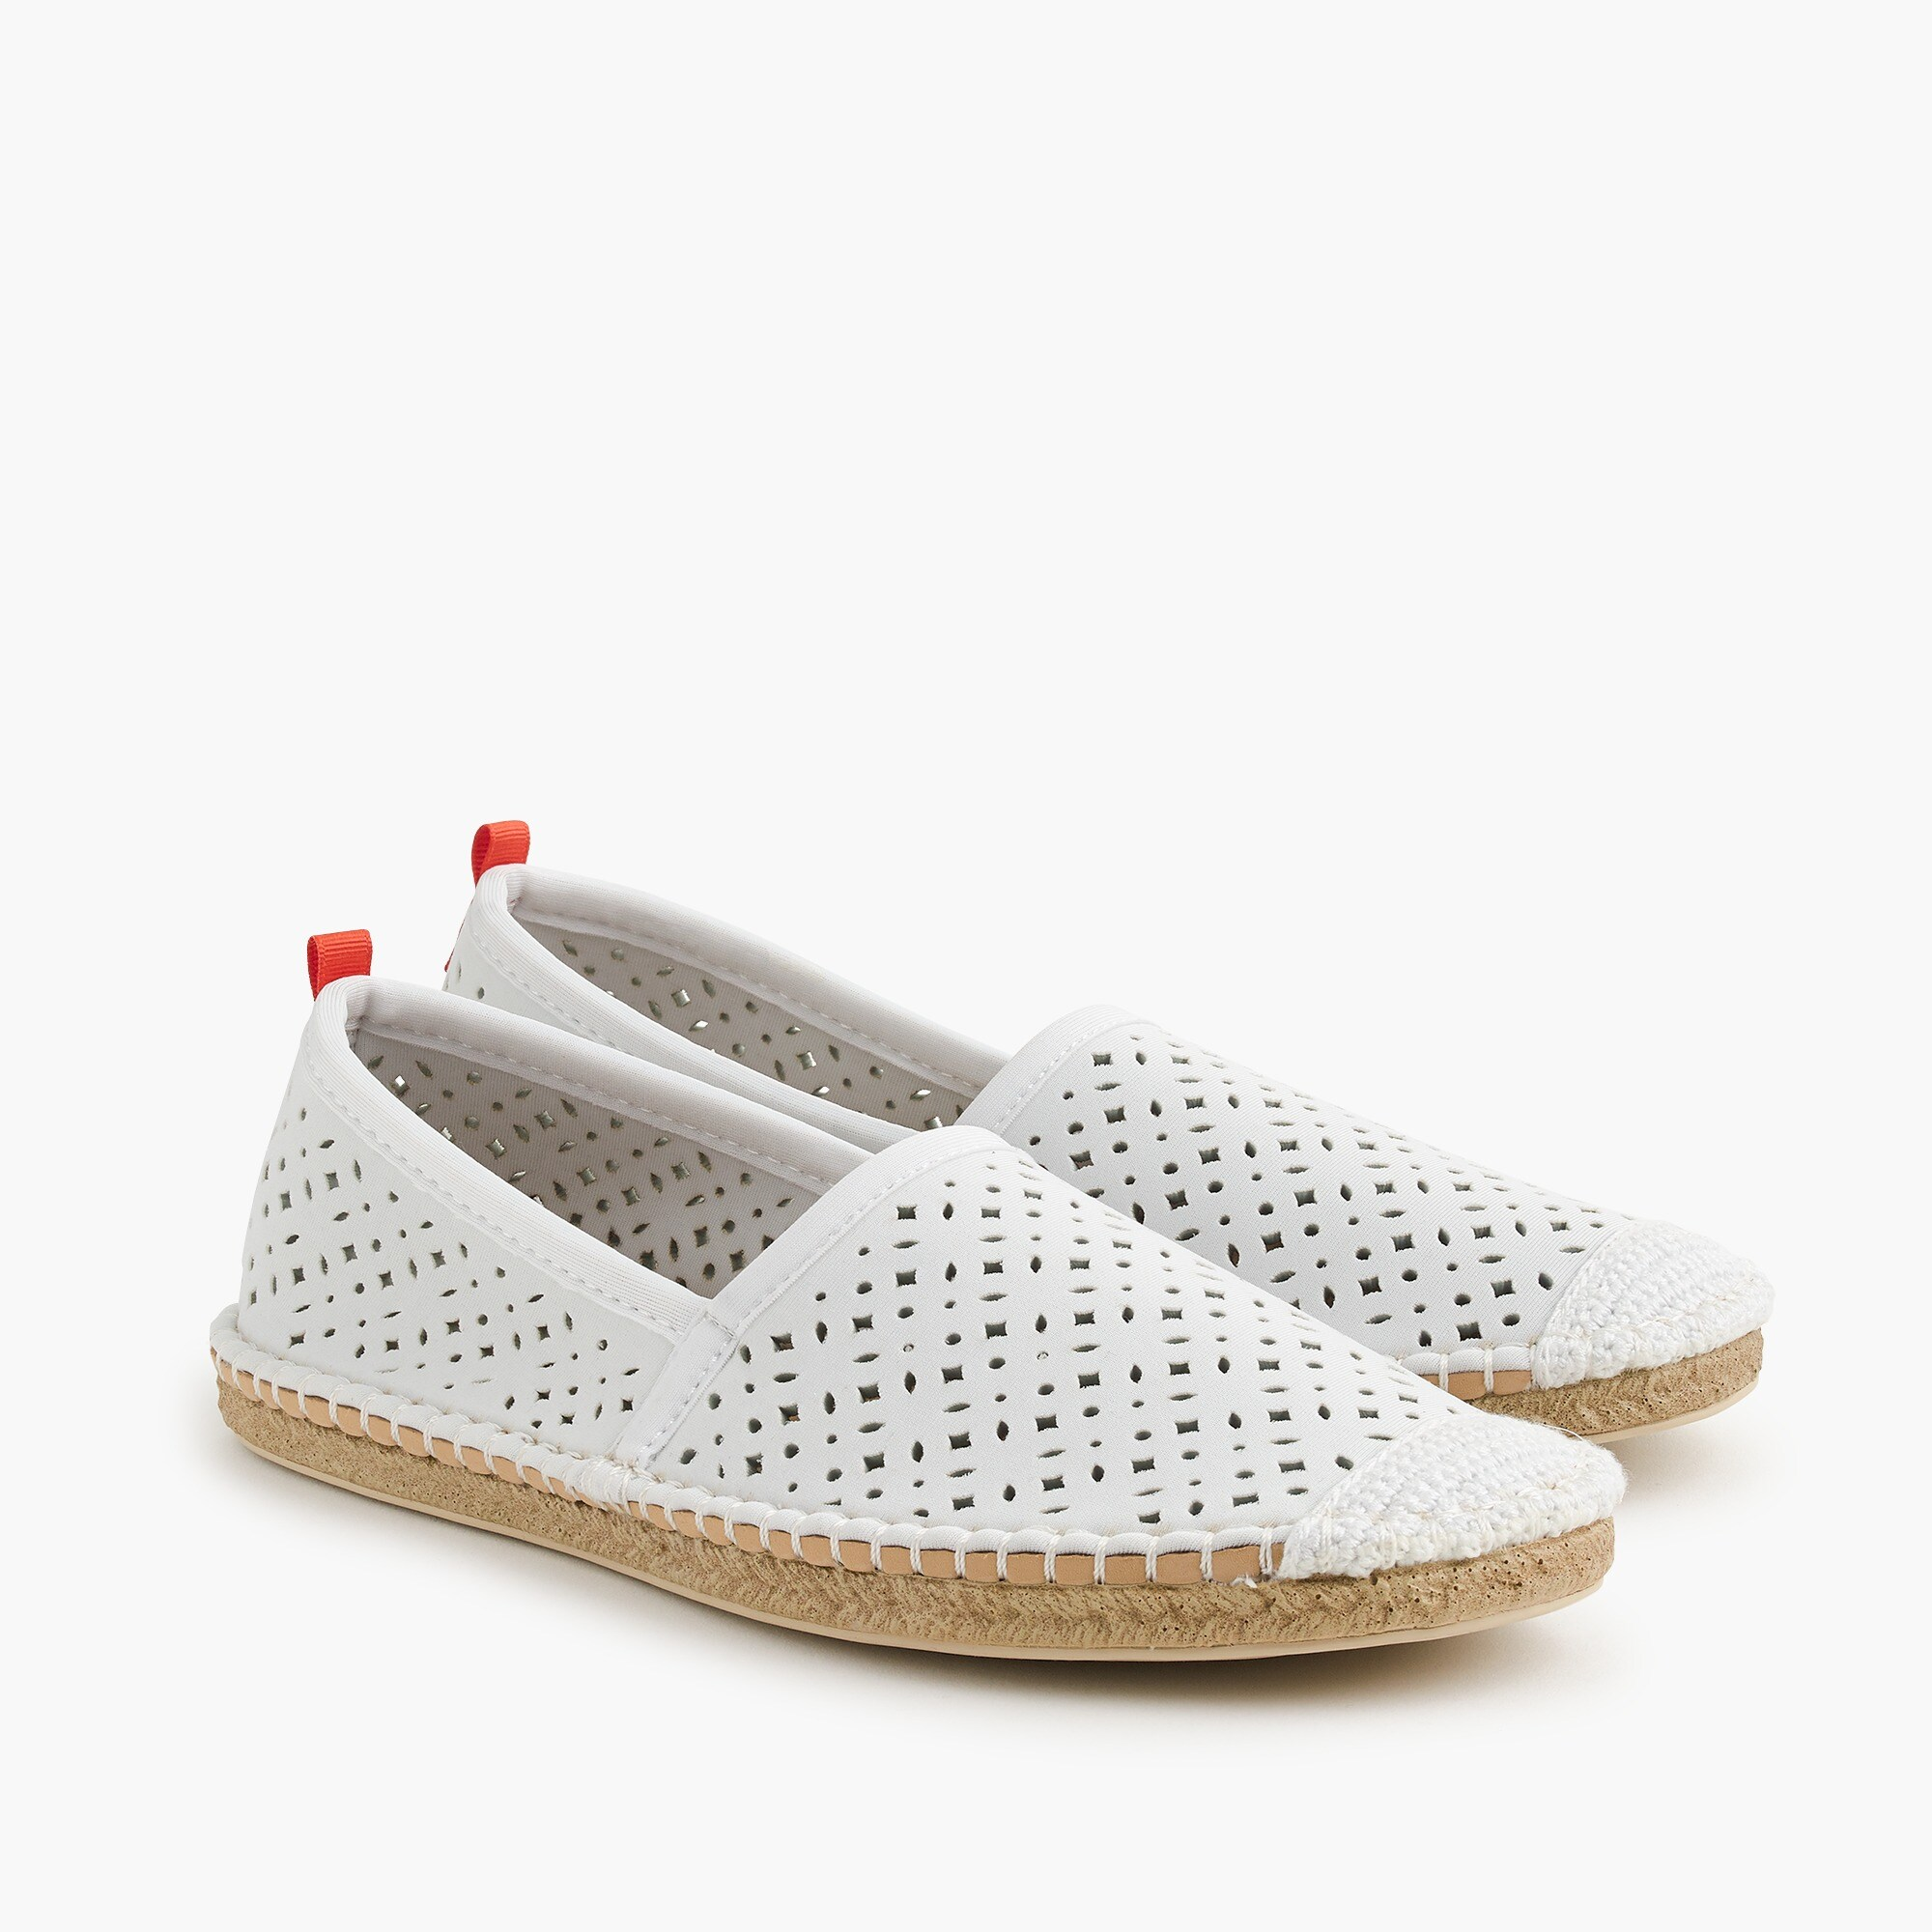 Sea Star® Beachcomber espadrille water shoes women j.crew in good company c